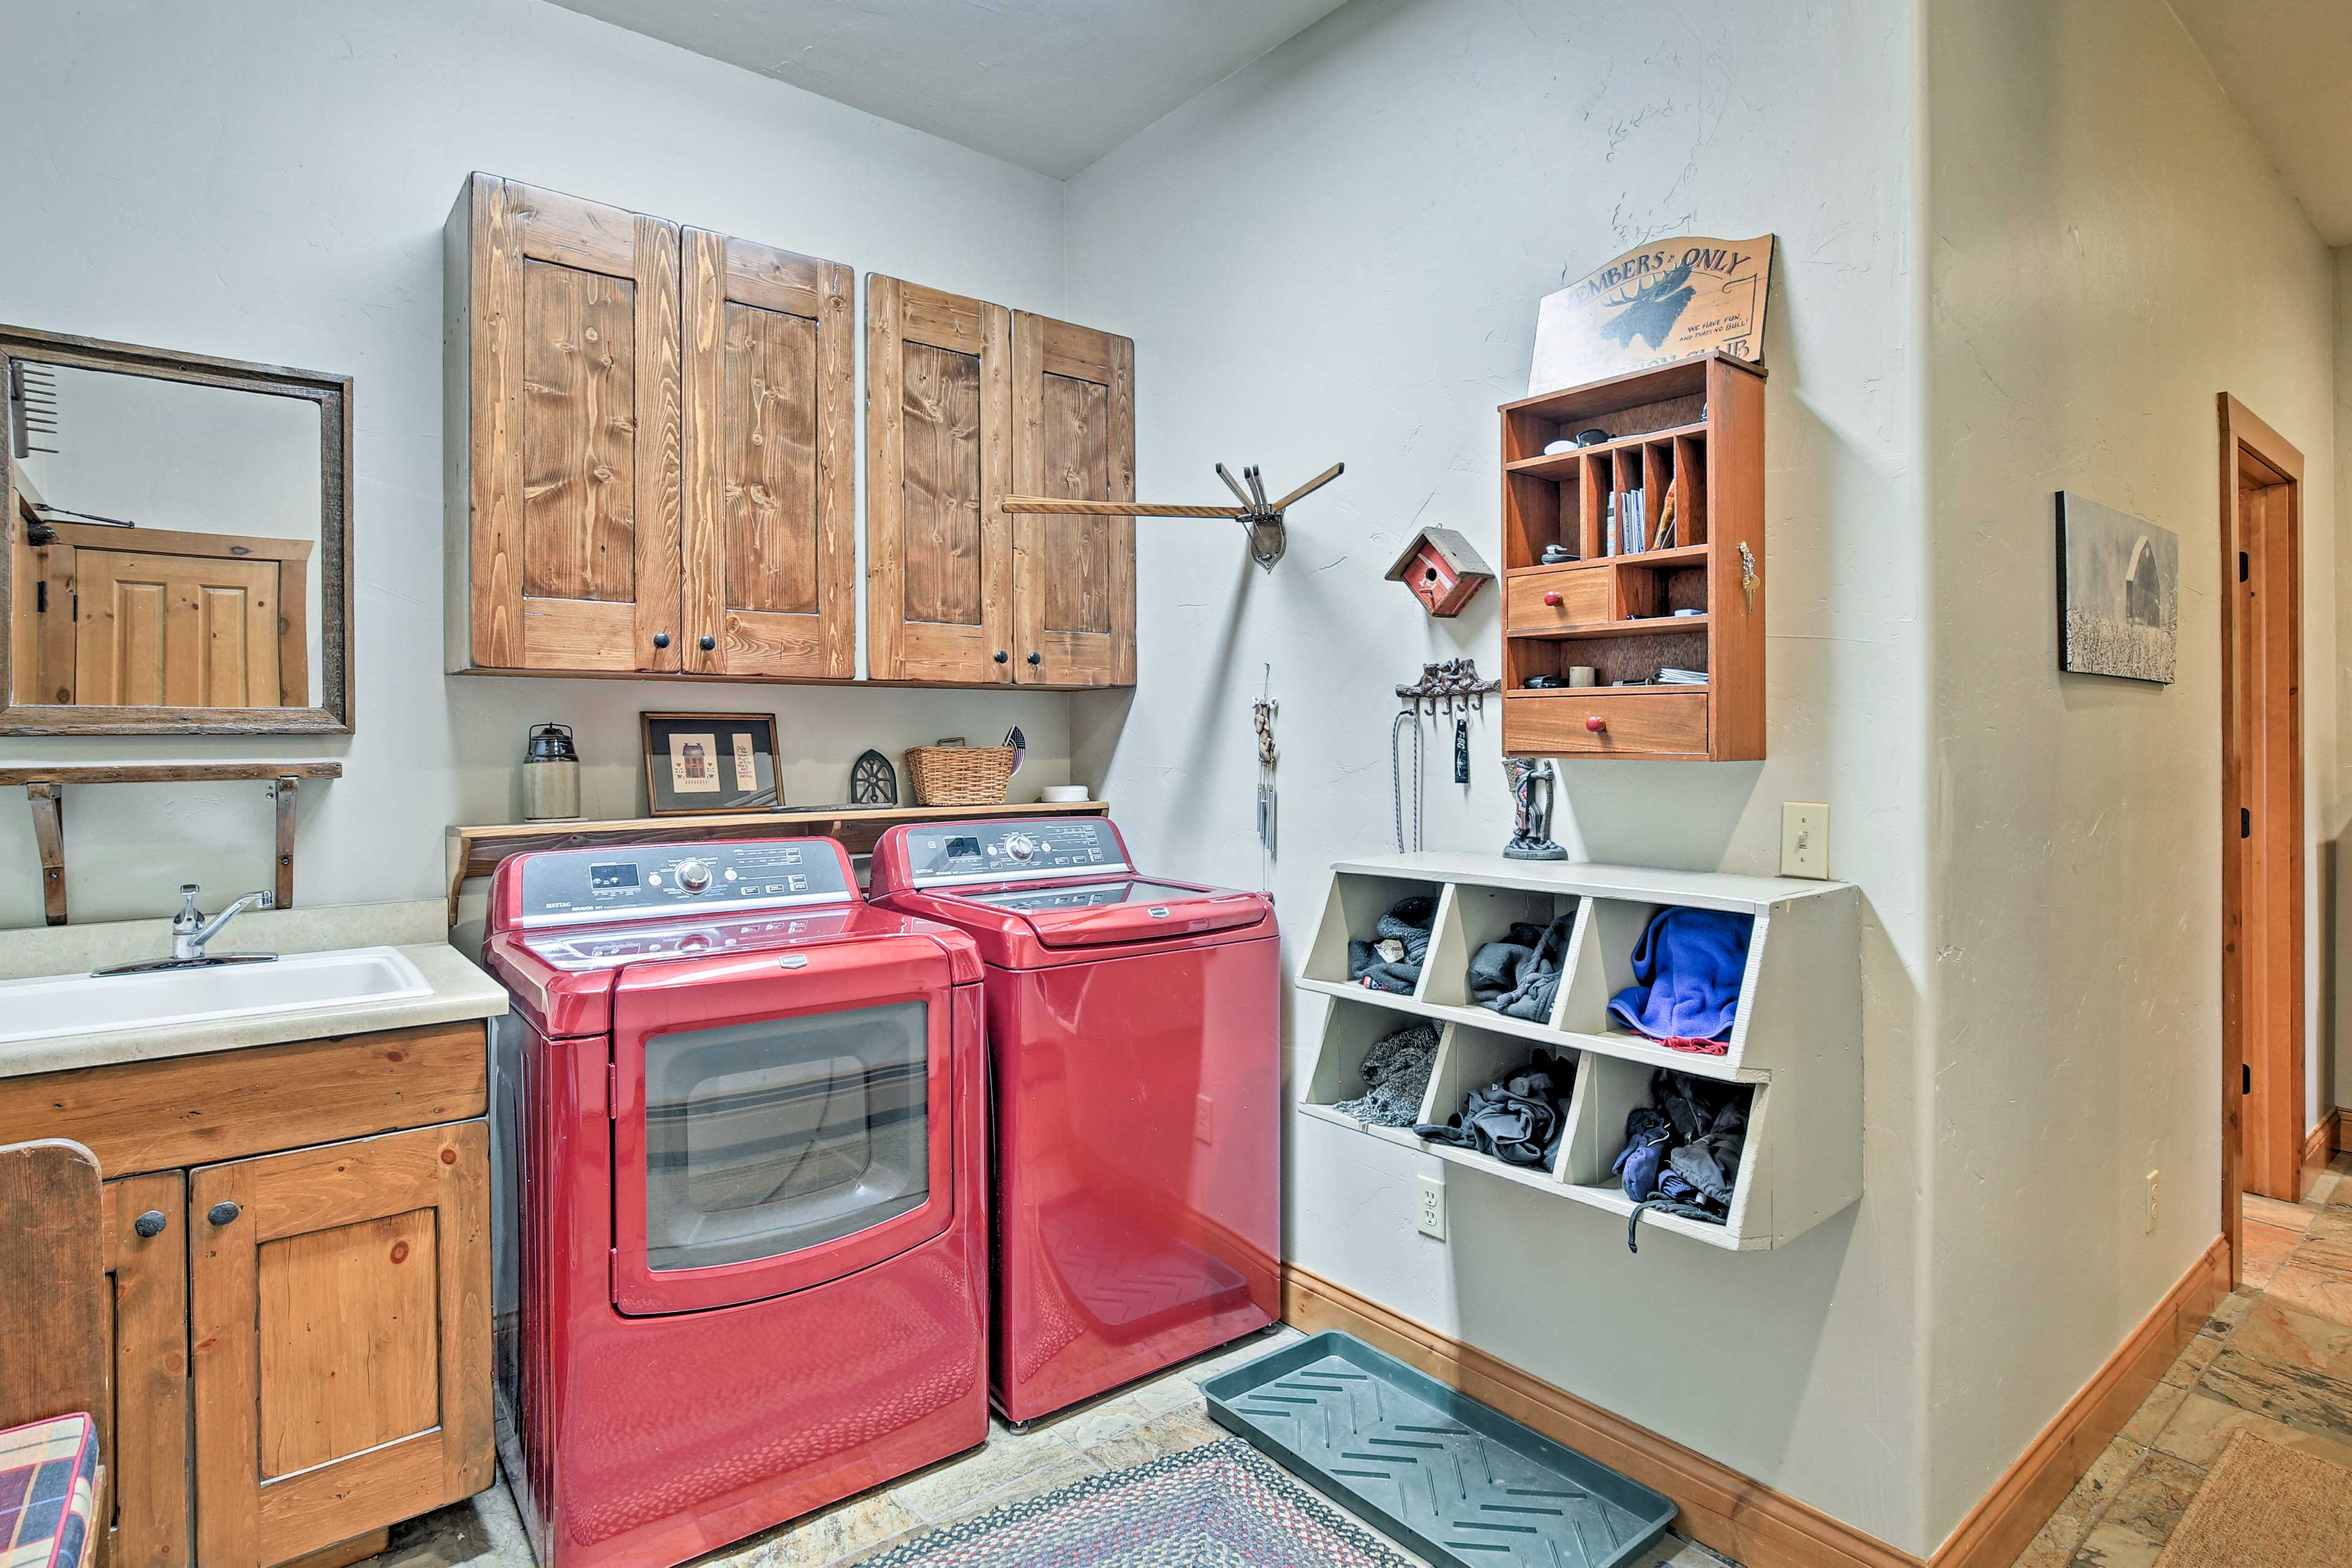 Storage for ski equipment is available in the laundry room.